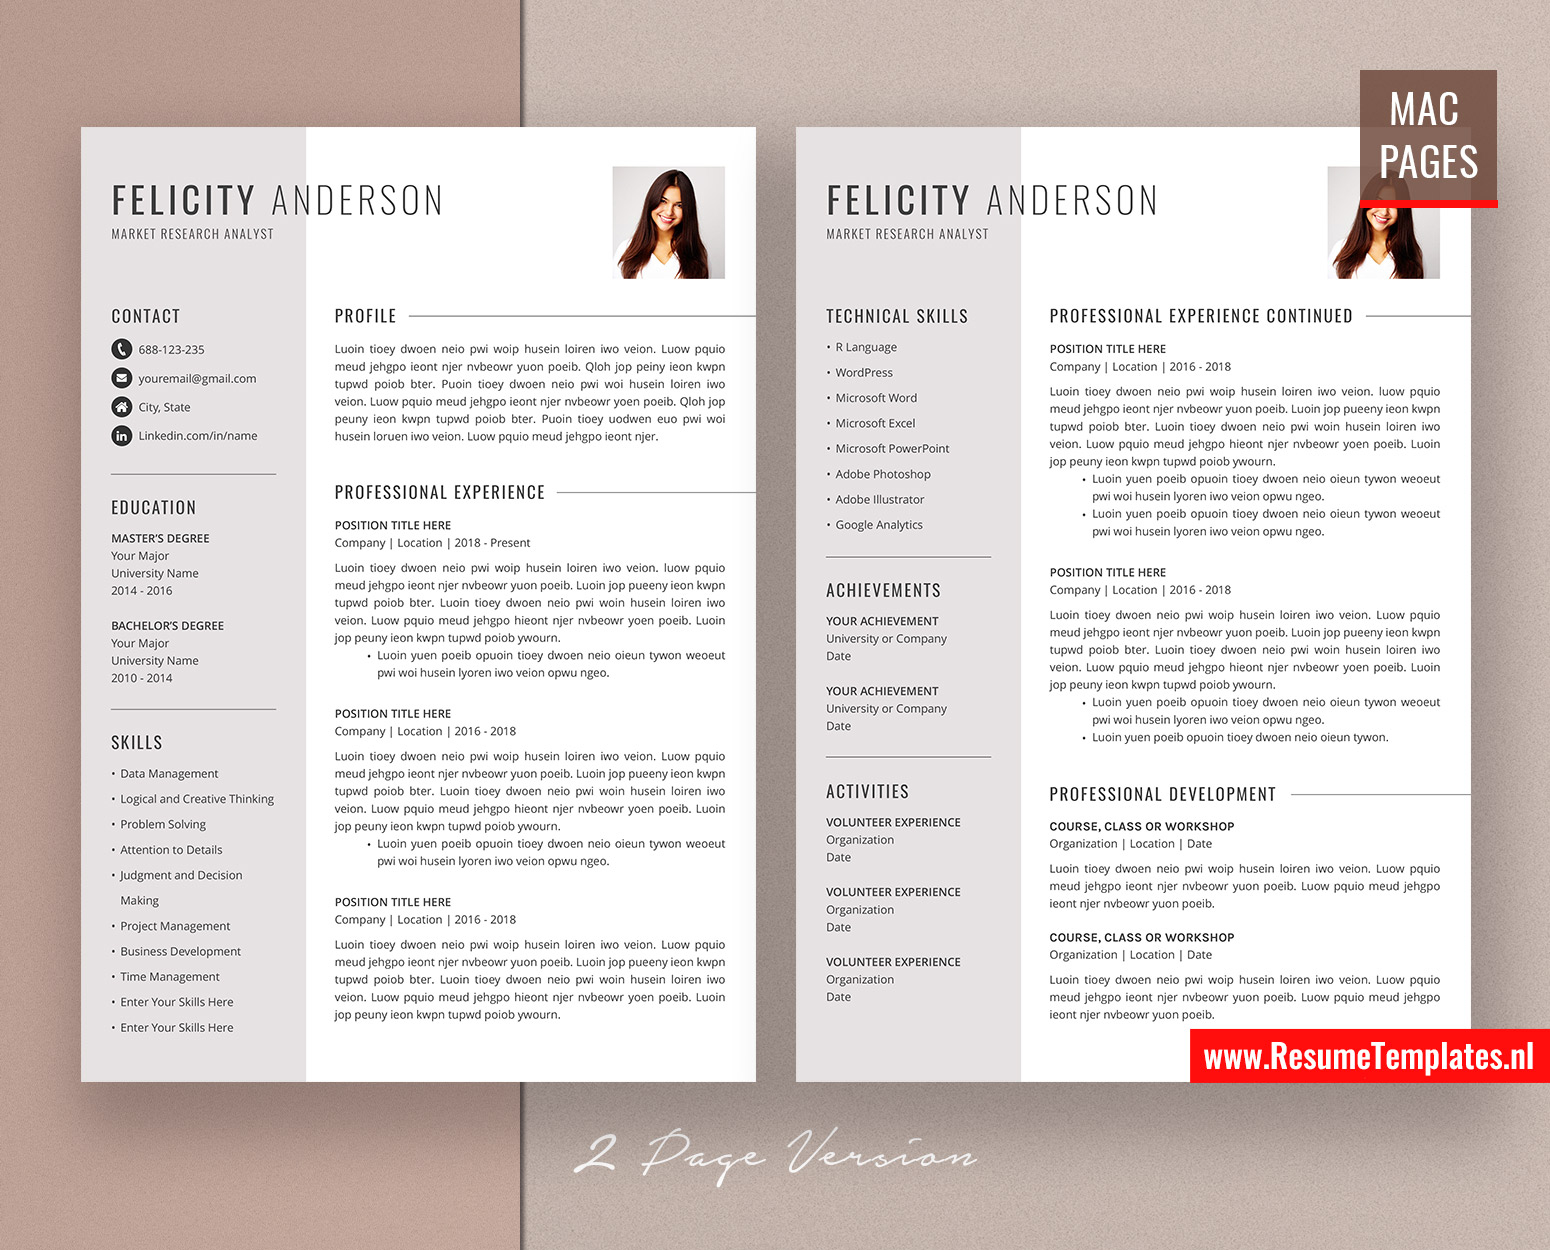 Creative cv template / resume template for mac pages, with cover letter and references template, modern and professional resume design, 1, 2 and 3 page resume, instant download. For Mac Pages Creative Cv Template Resume Template For Mac Pages Cover Letter Curriculum Vitae Modern Resume Template With Photo Clean And Professional Resume Design Instant Download Resumetemplates Nl